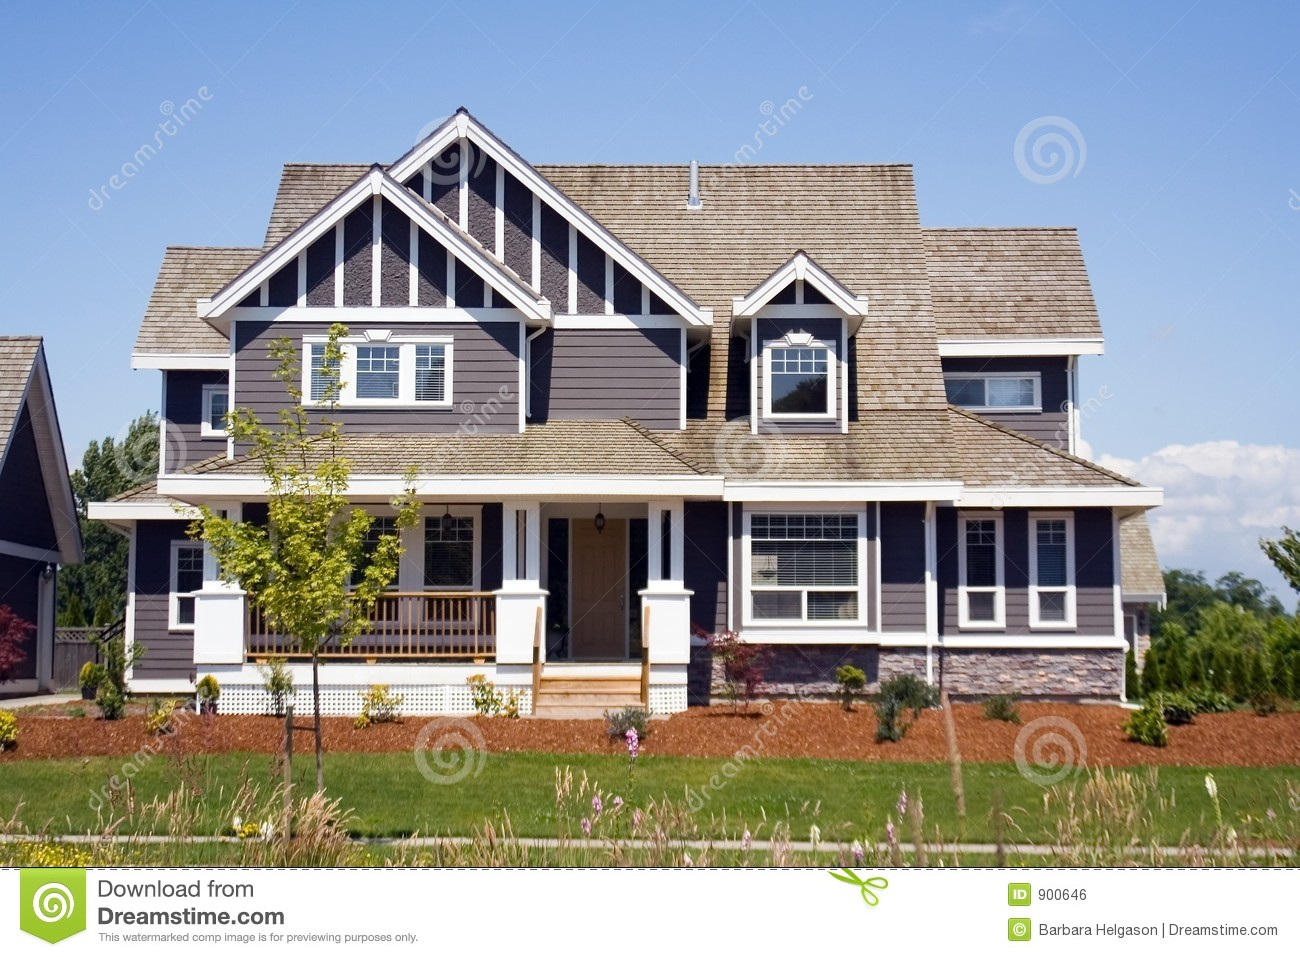 New large country house royalty free stock image image - Maison de la literie plan de campagne ...